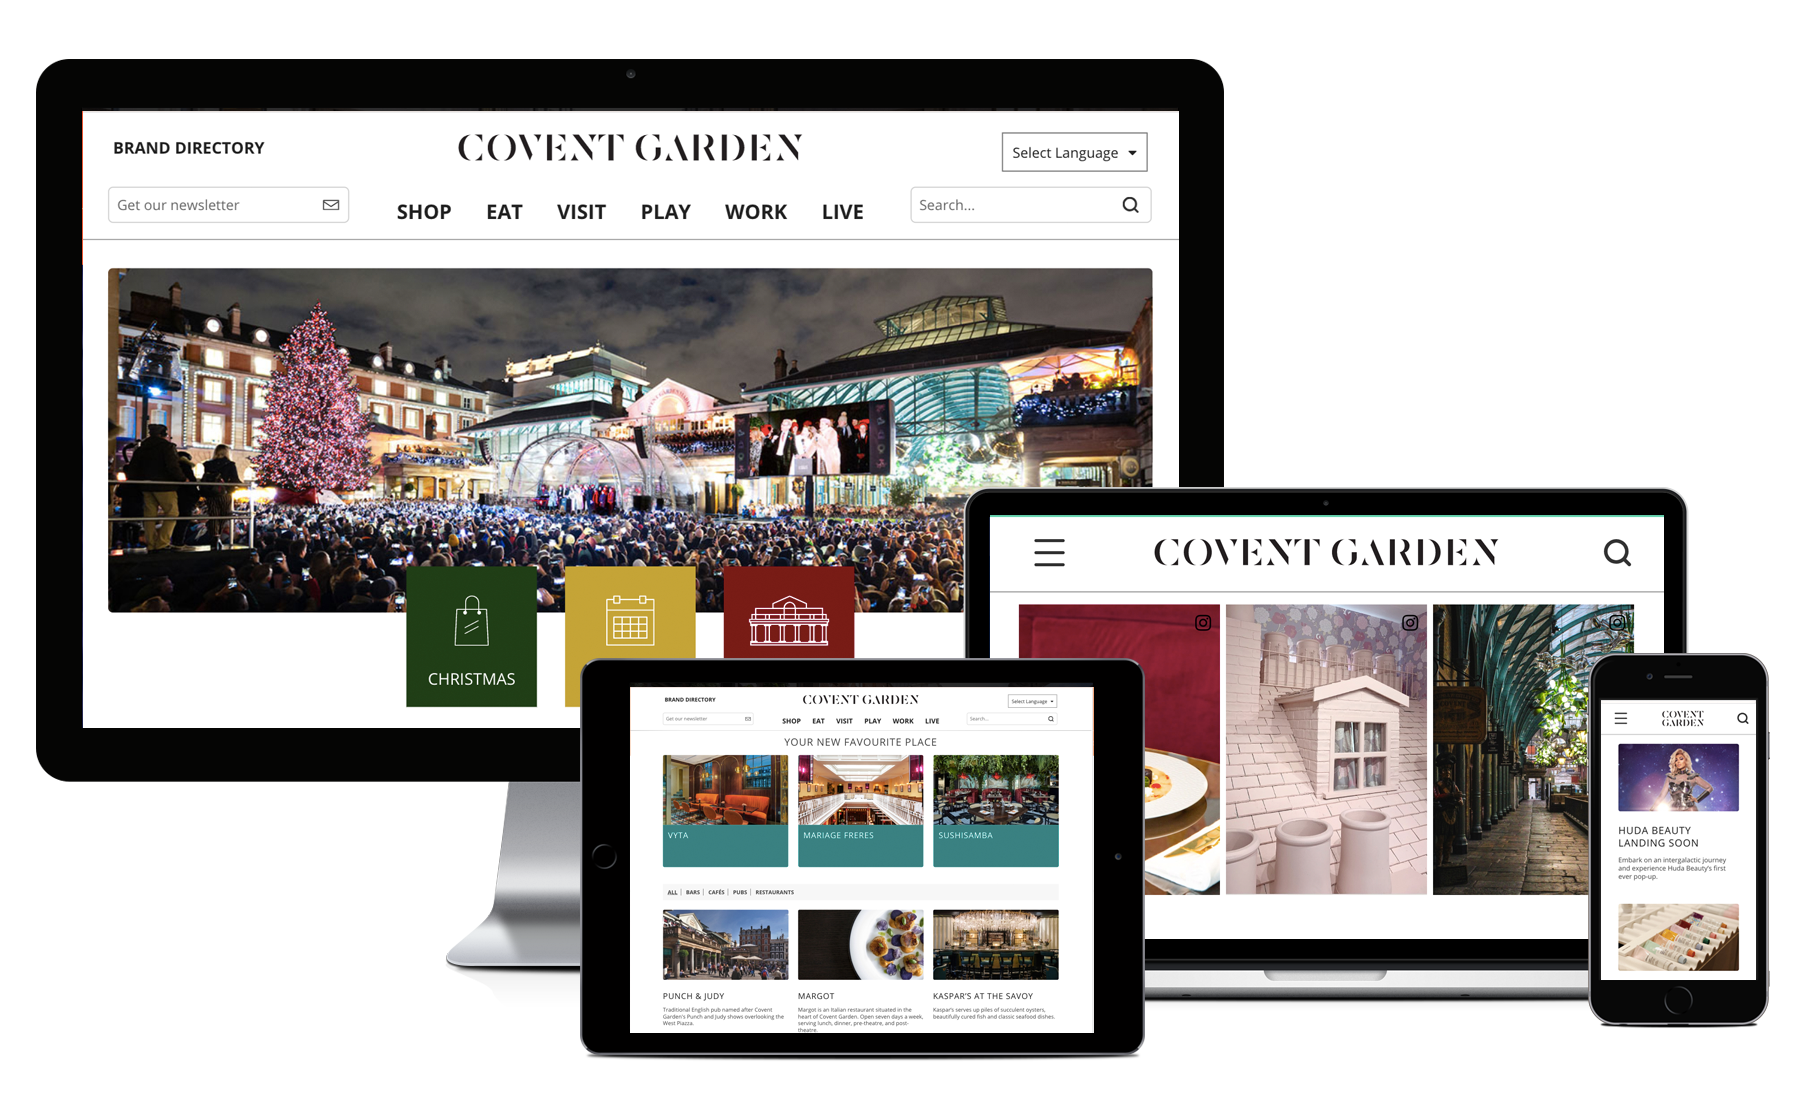 Desktop, Macbook, tablet and iPhone showing pages from Covent Garden's website